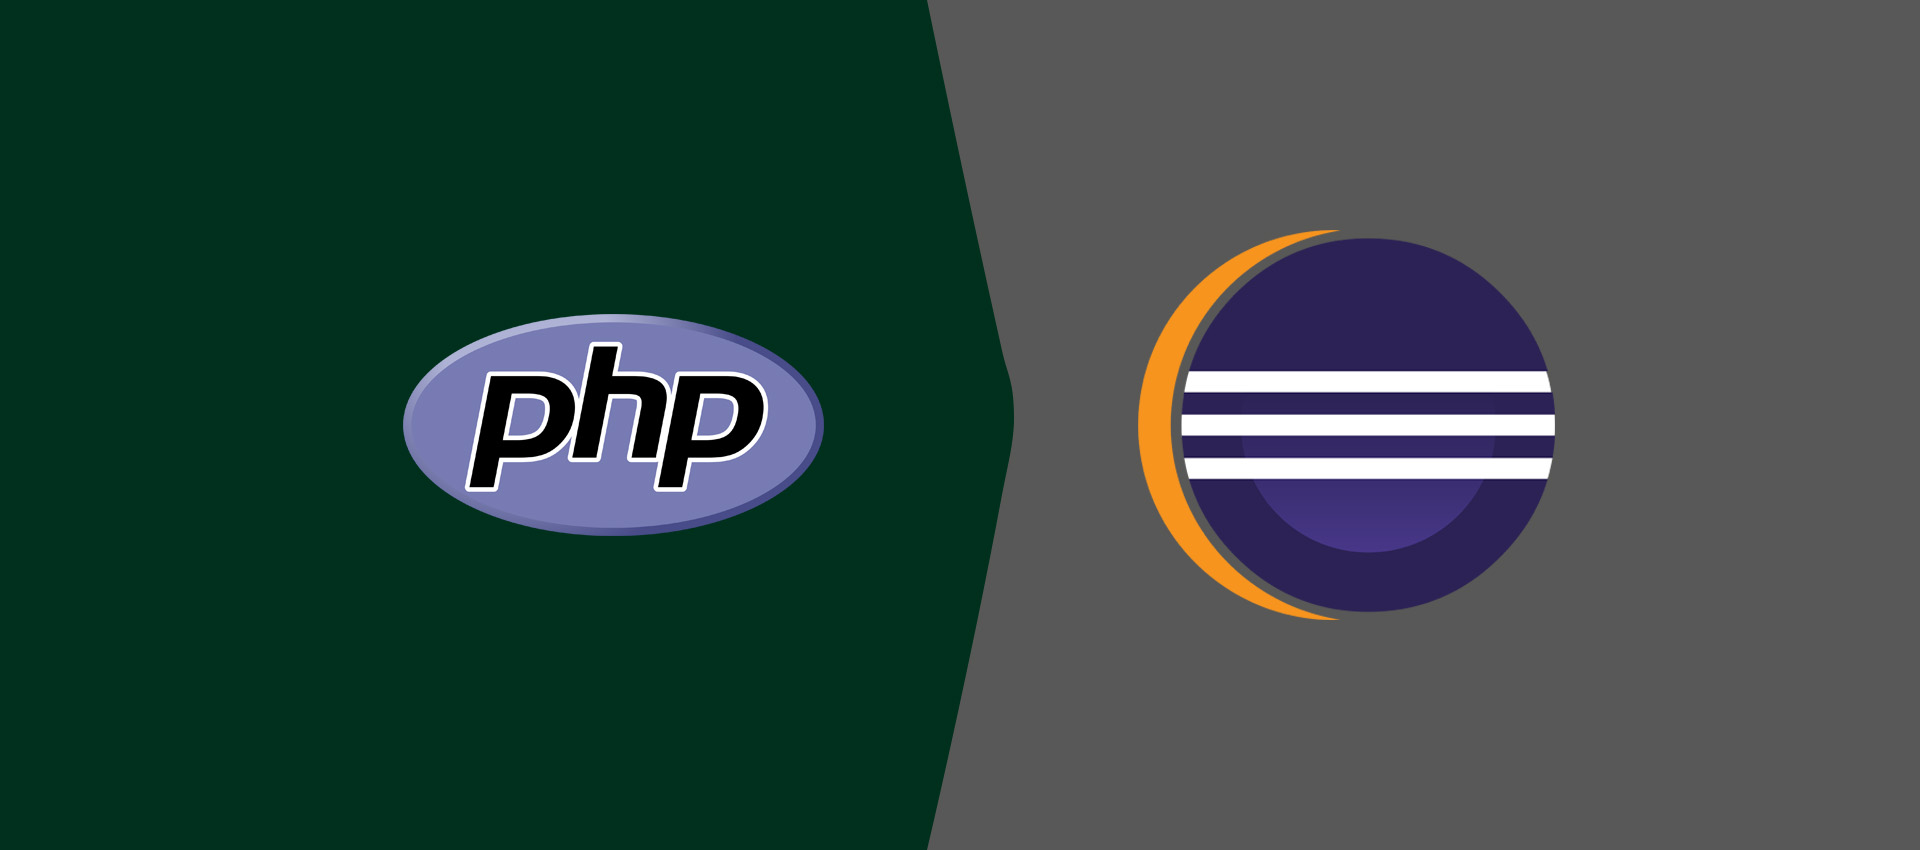 How To Debug PHP In Eclipse On Windows